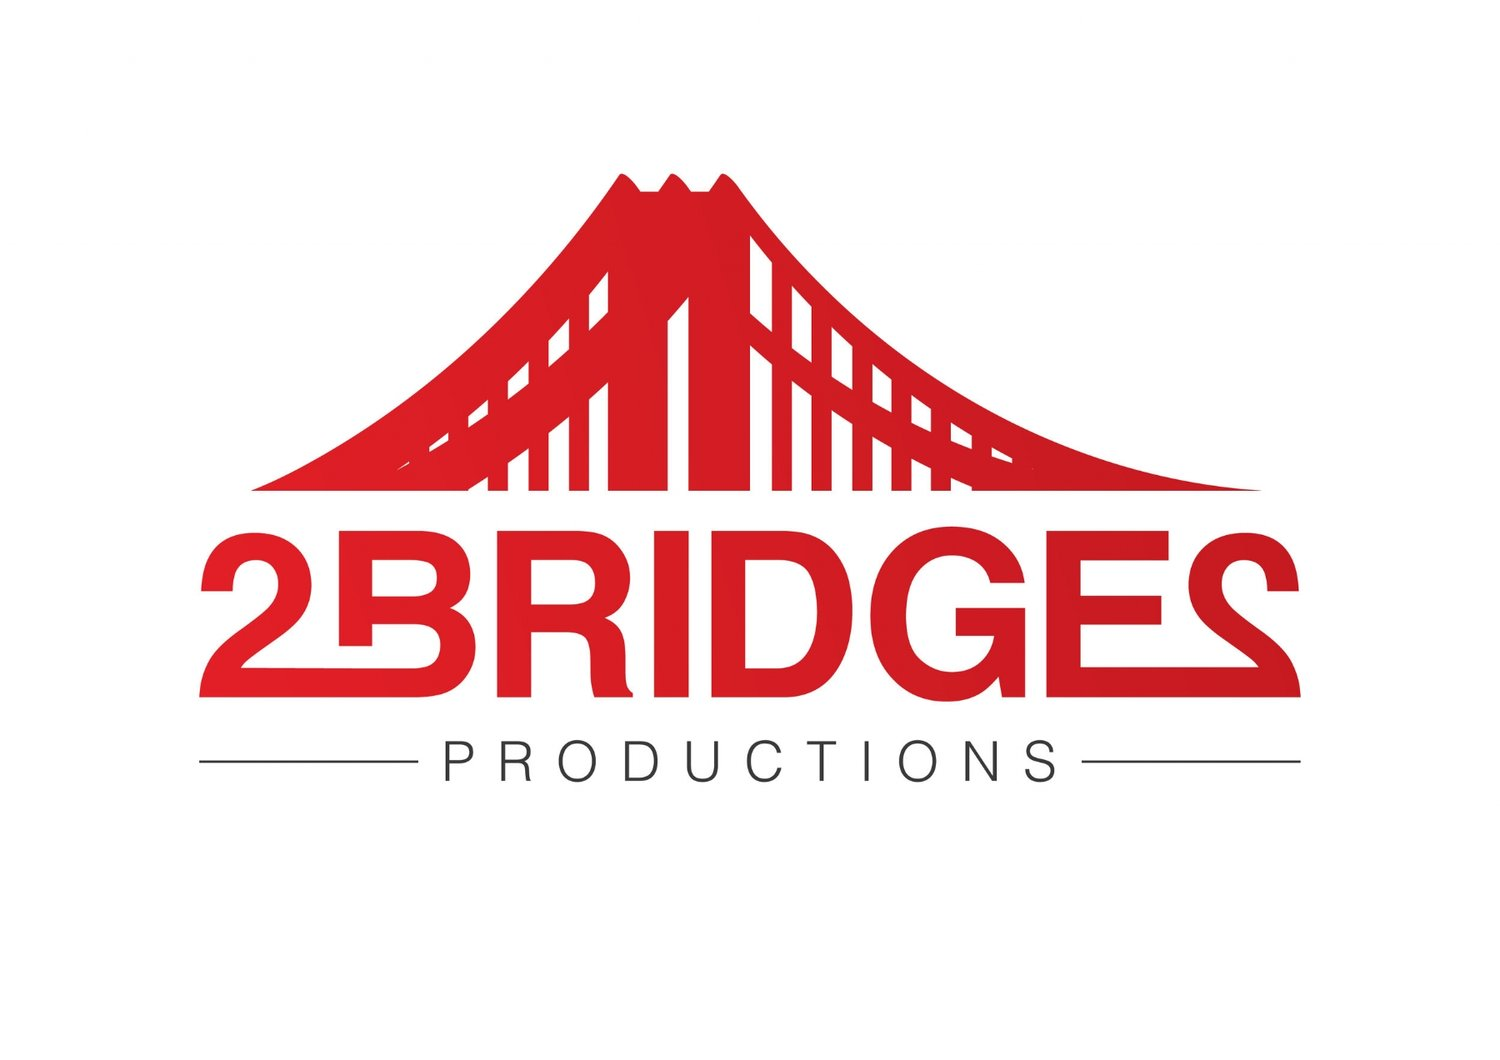 2Bridges Productions